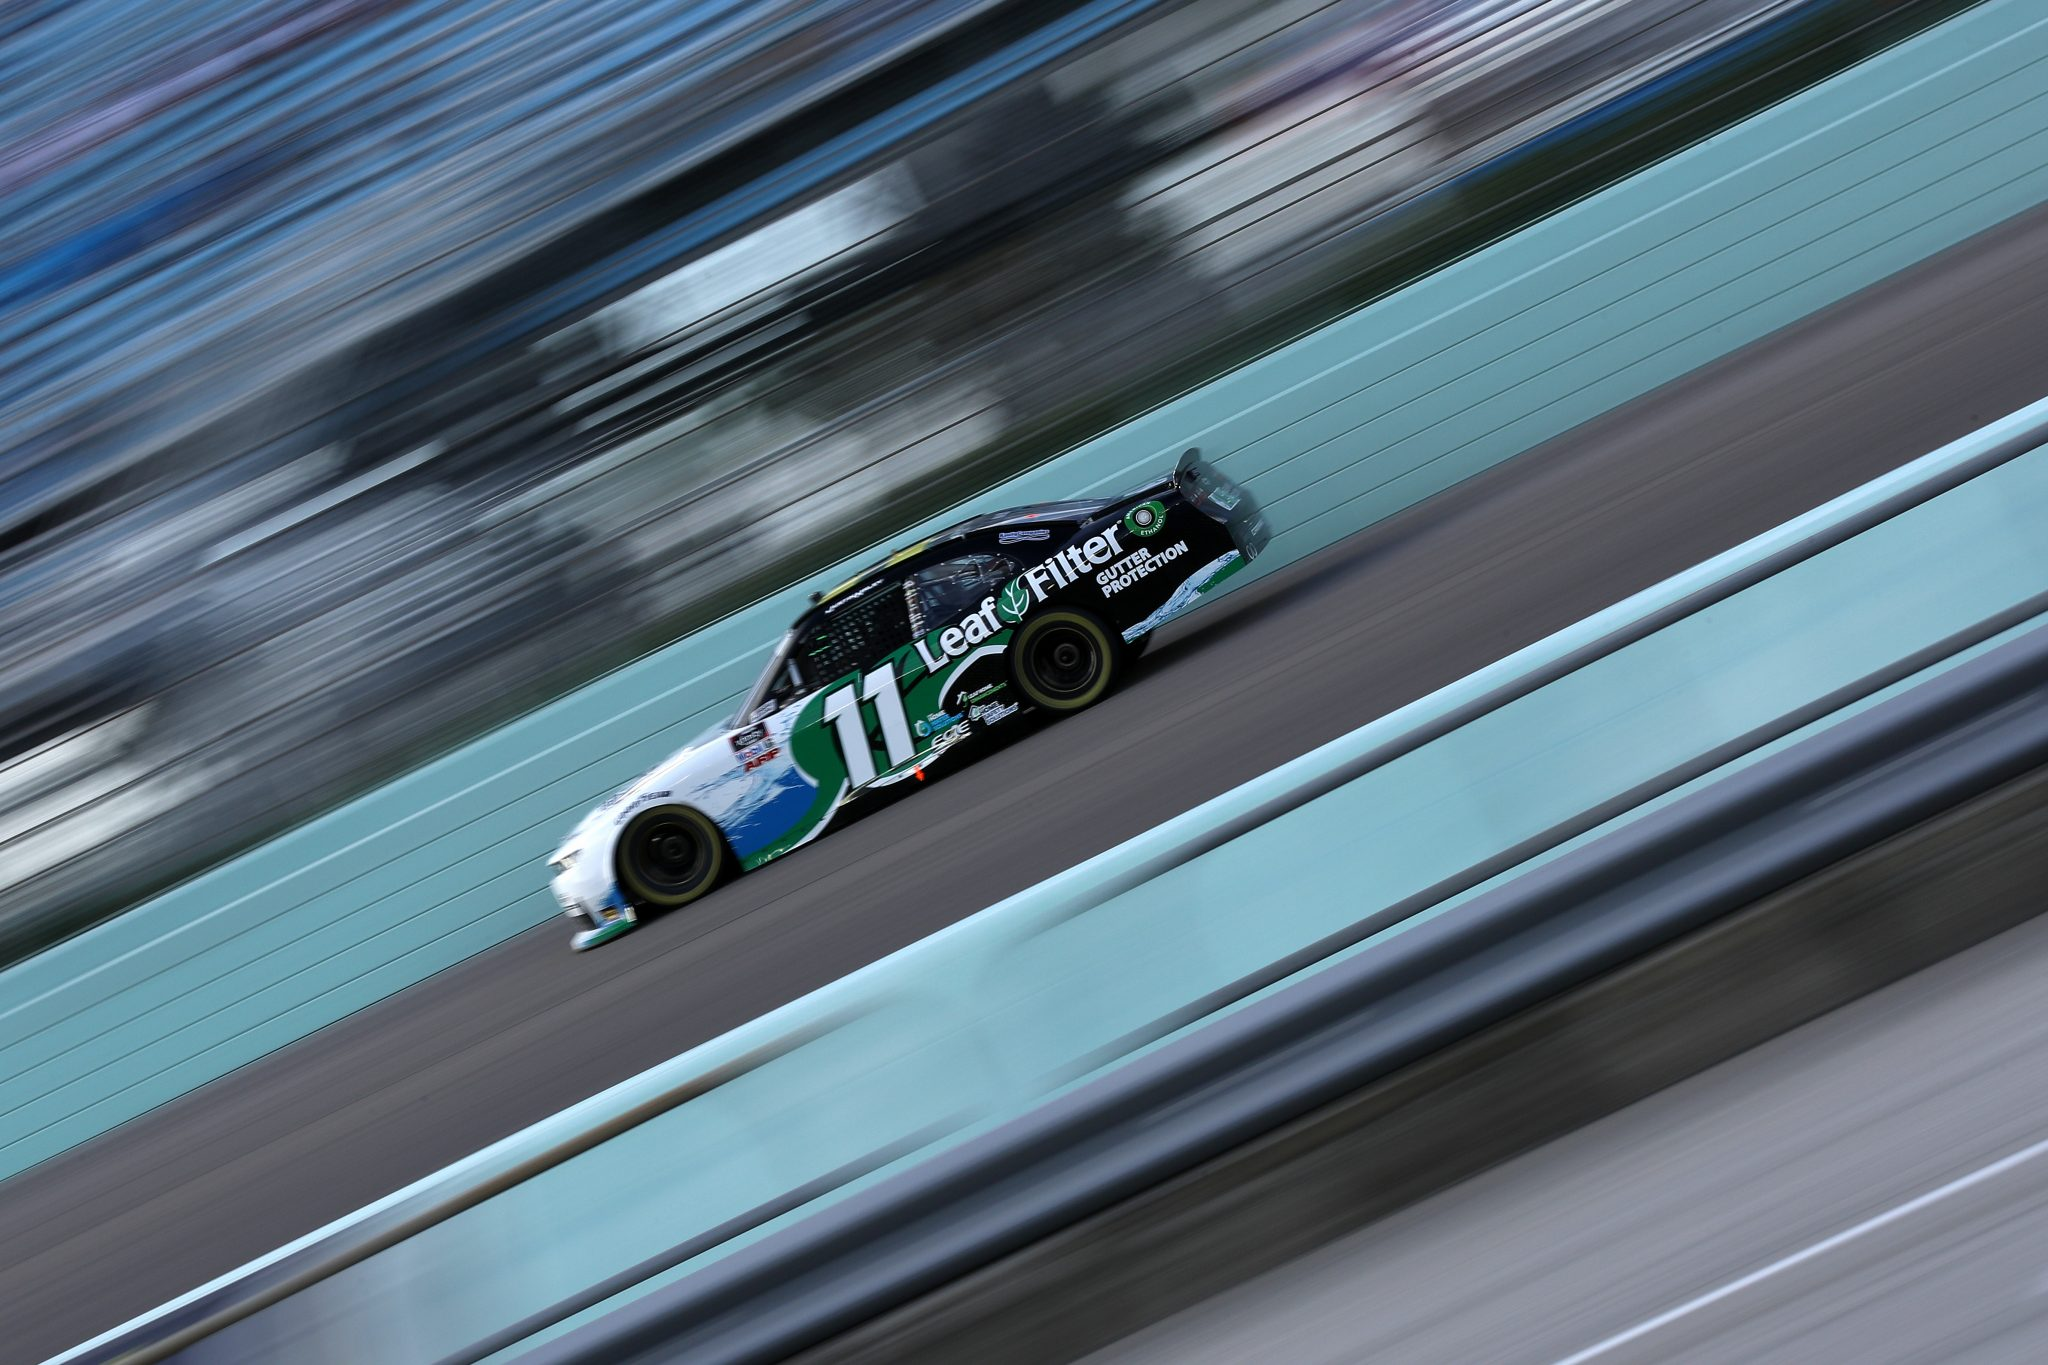 HOMESTEAD, FLORIDA - FEBRUARY 27: Justin Haley, driver of the #11 LeafFilter Gutter Protection Chevrolet, drives during the NASCAR Xfinity Series Contender Boats 250 at Homestead-Miami Speedway on February 27, 2021 in Homestead, Florida. (Photo by Sean Gardner/Getty Images) | Getty Images